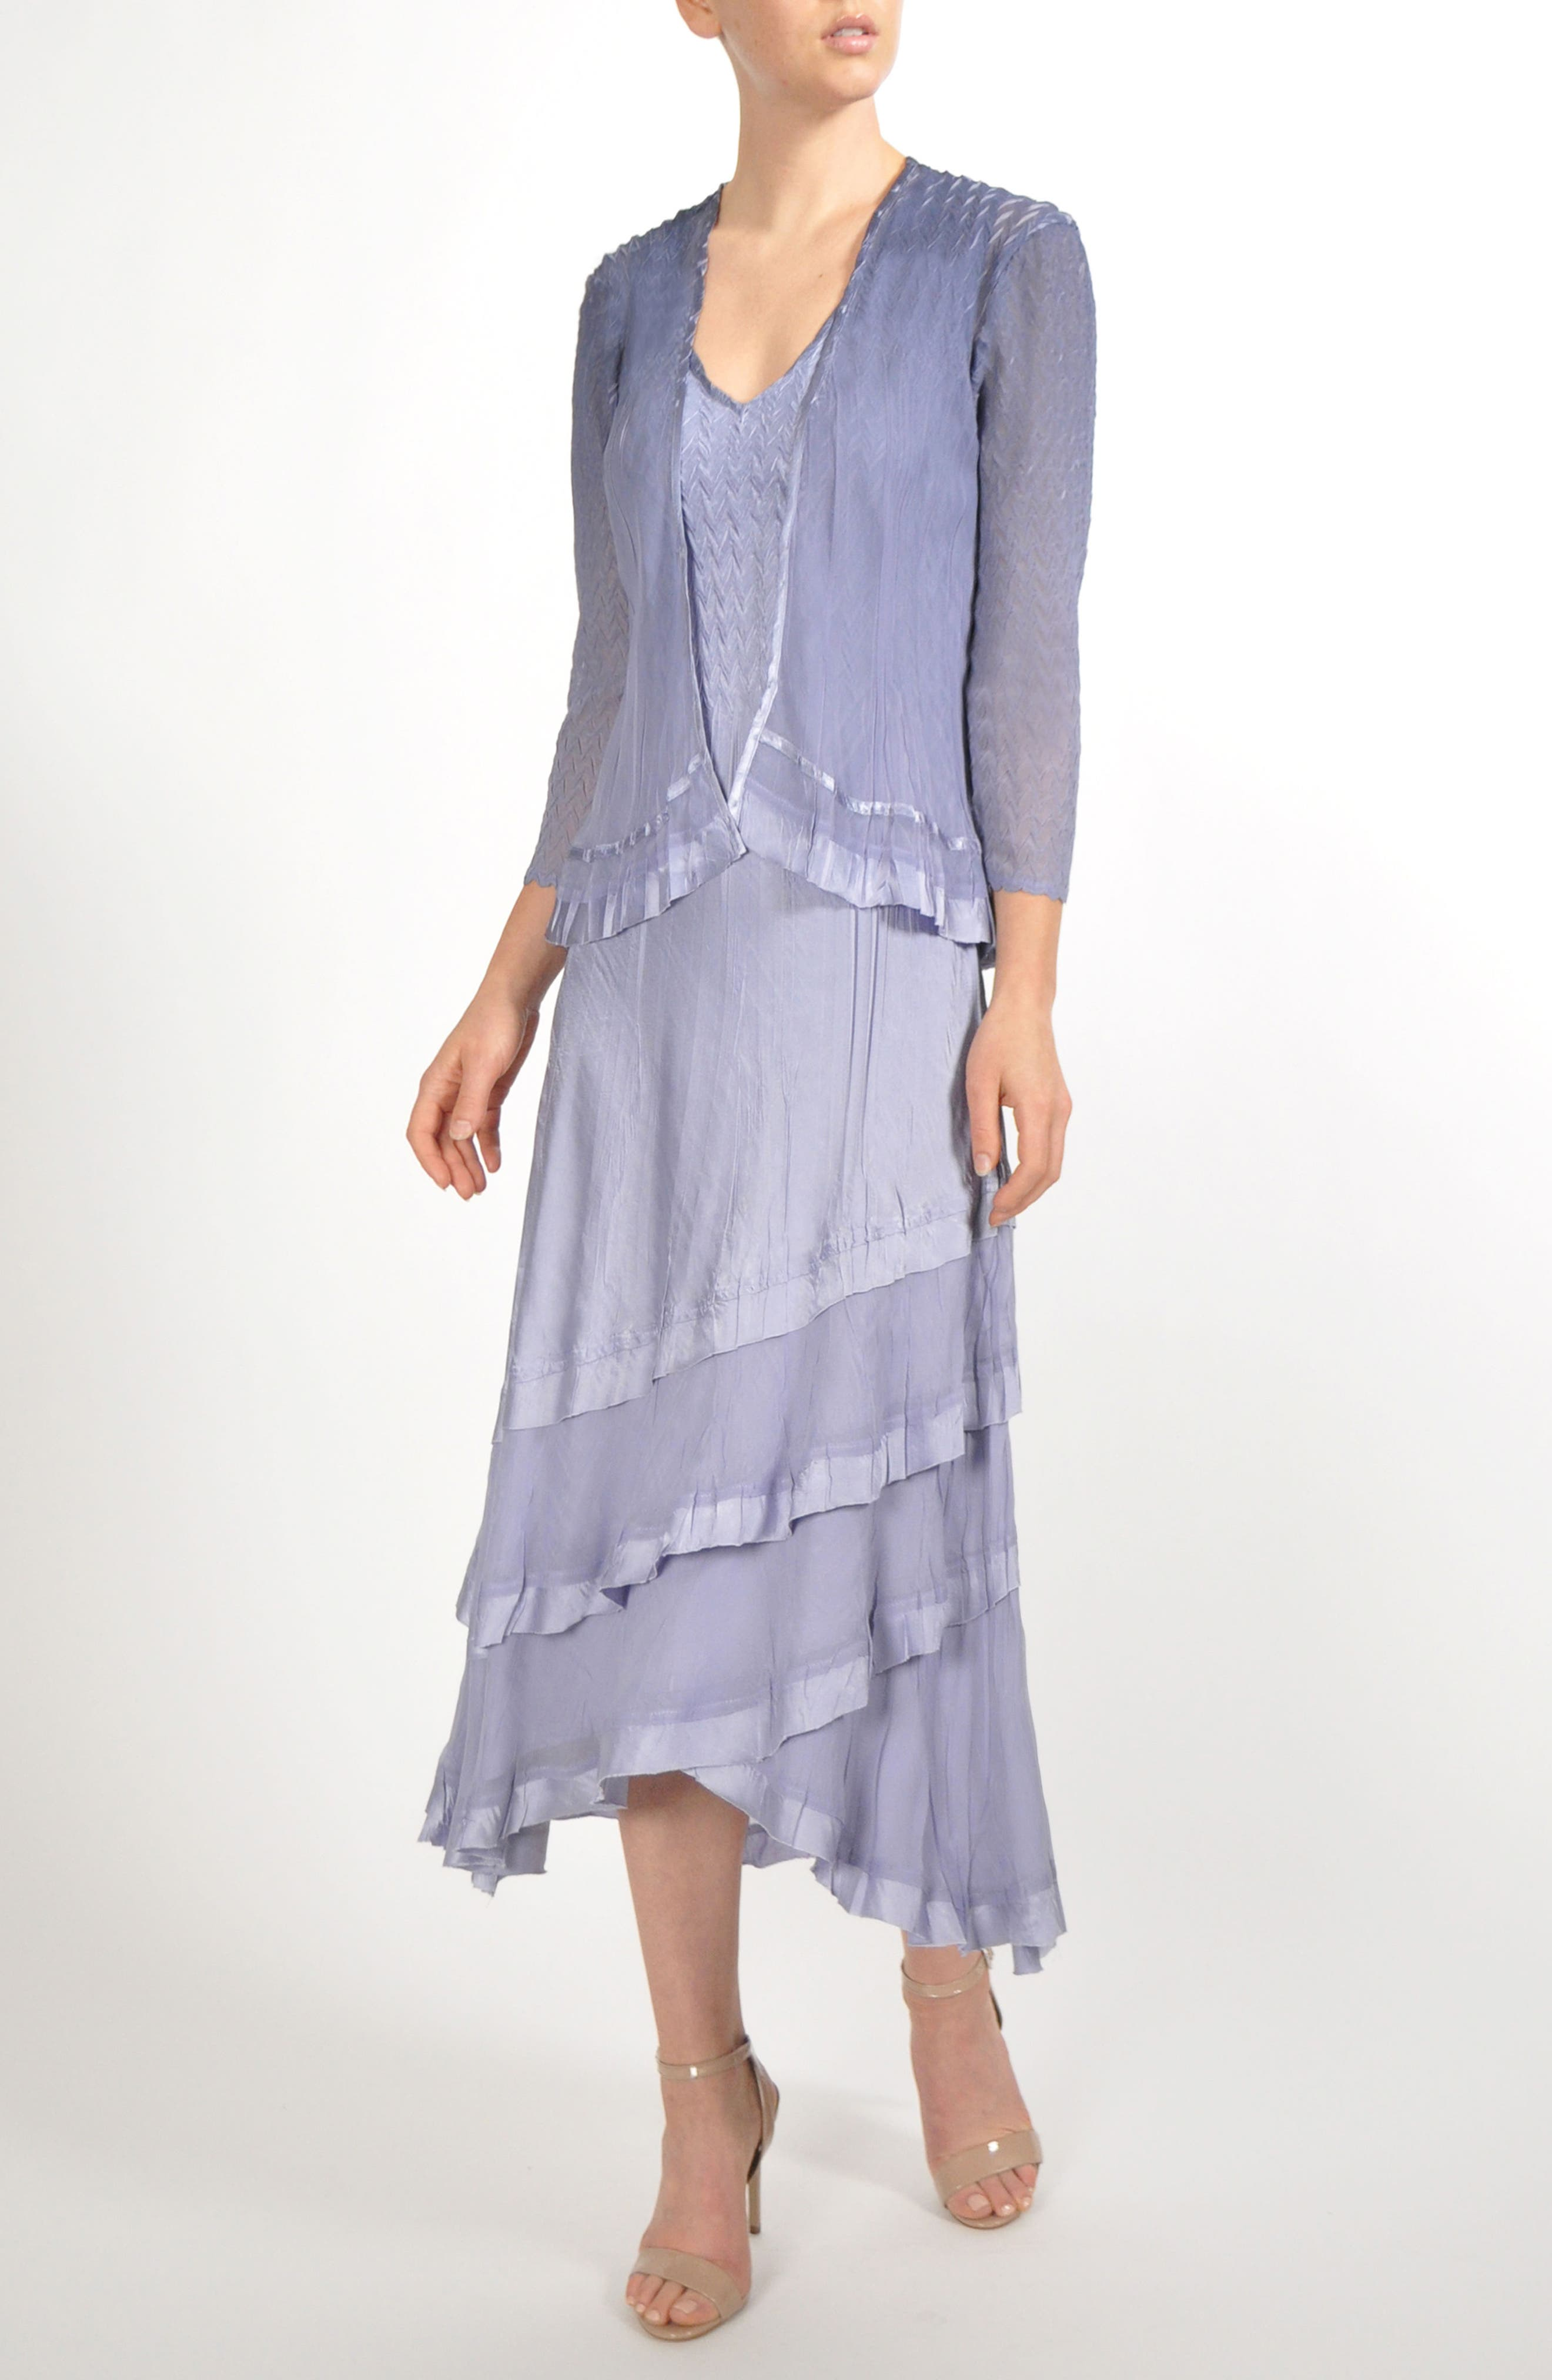 Charmeuse & Chiffon Tiered Hem Dress with Jacket,                             Alternate thumbnail 4, color,                             LAVENDER GREY BLUE OMBRE